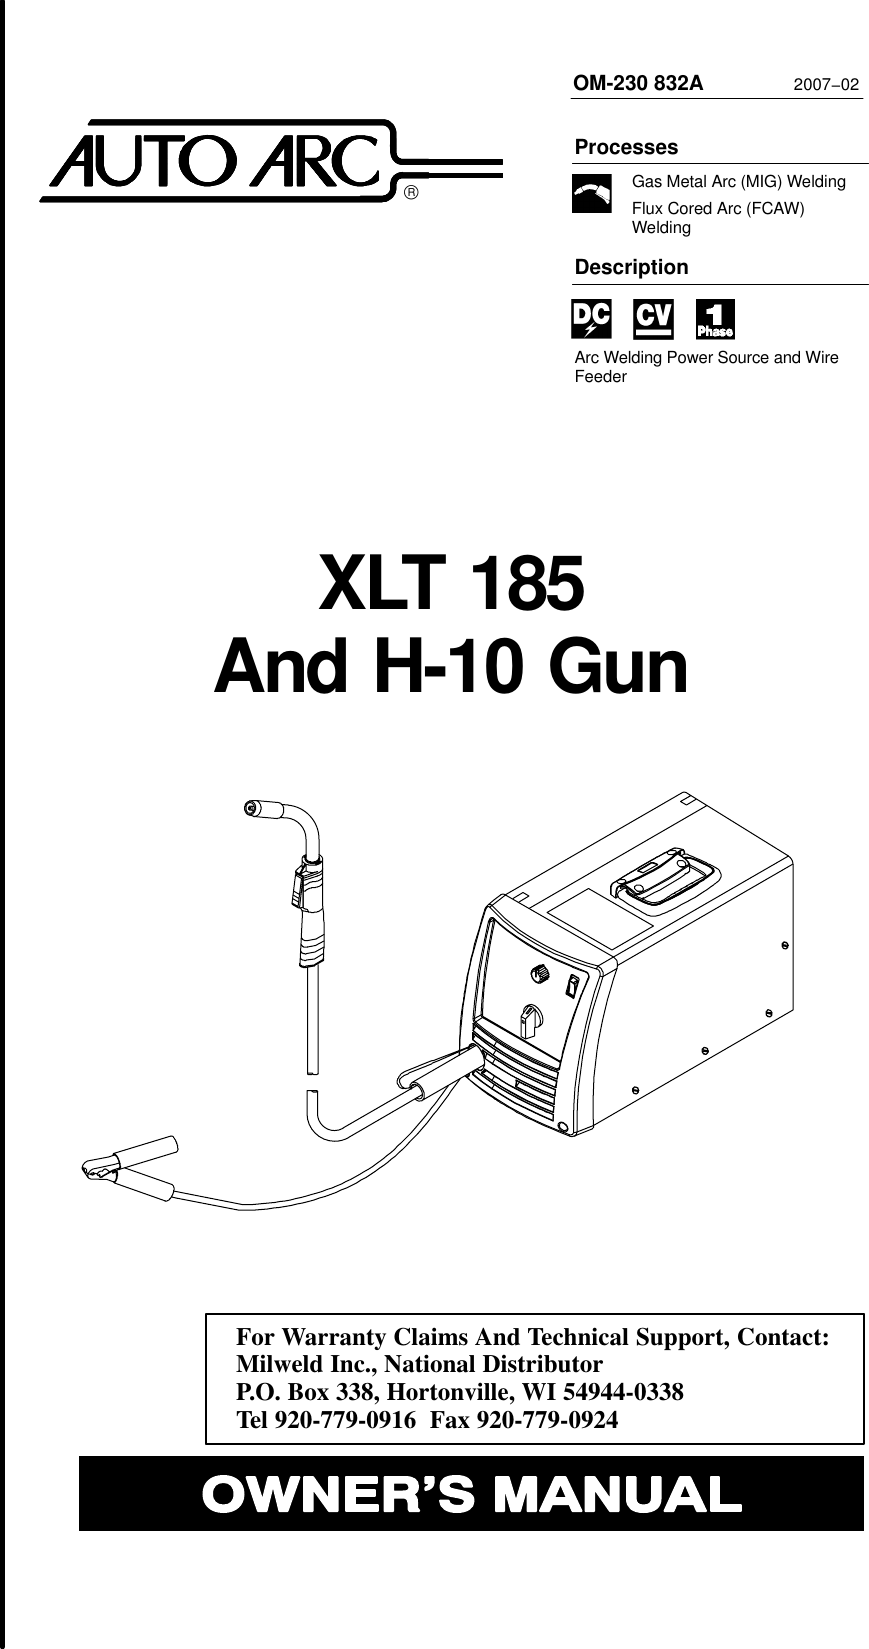 Miller Electric Xlt 185 Users Manual O230832a Aut Diagram Besides Tig Welder Schematic On Can Bus Light Circuit